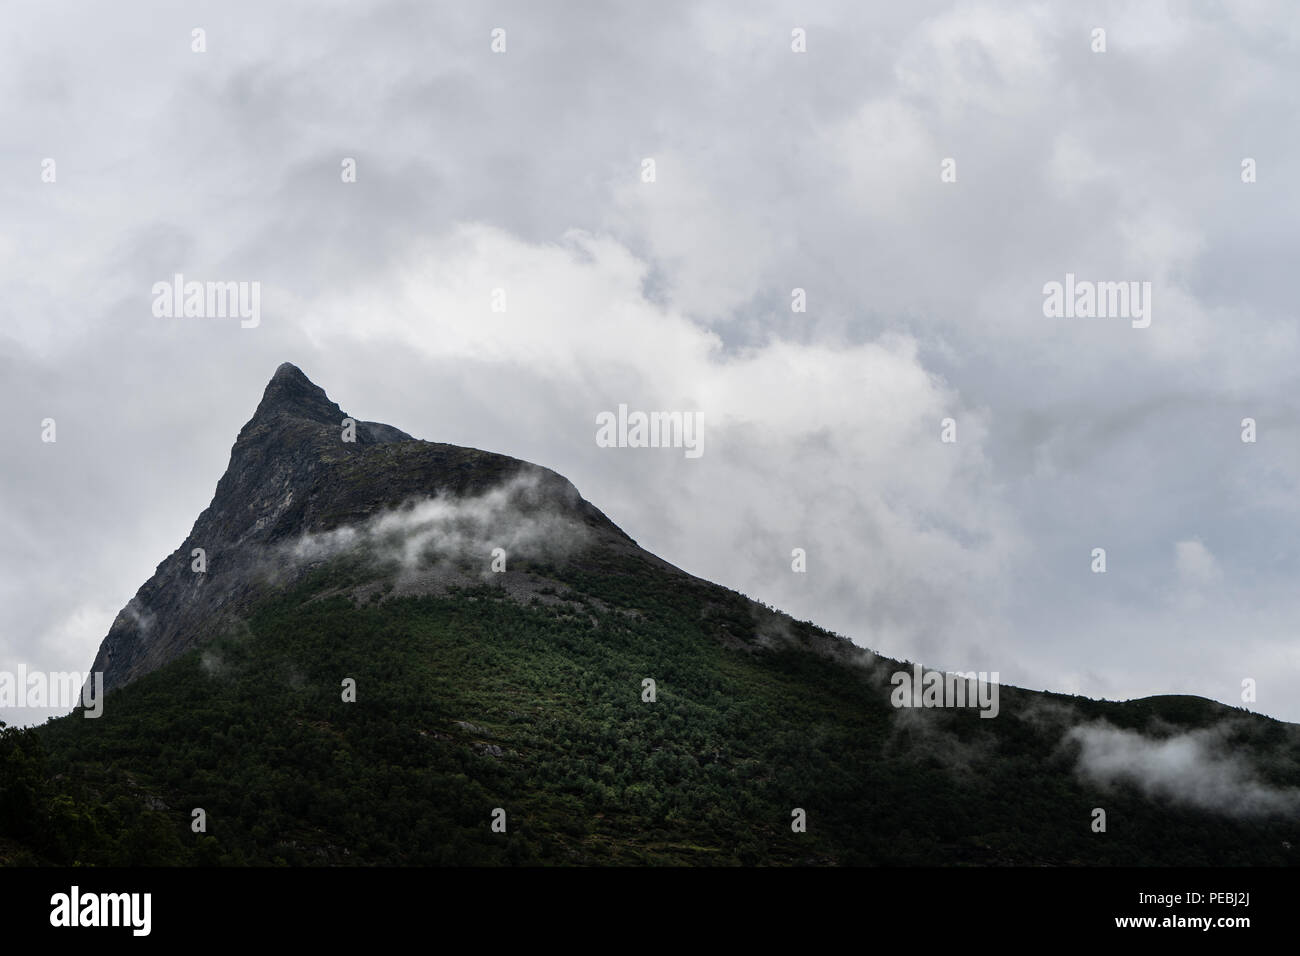 Pointy mountain and cloudy weather - Stock Image